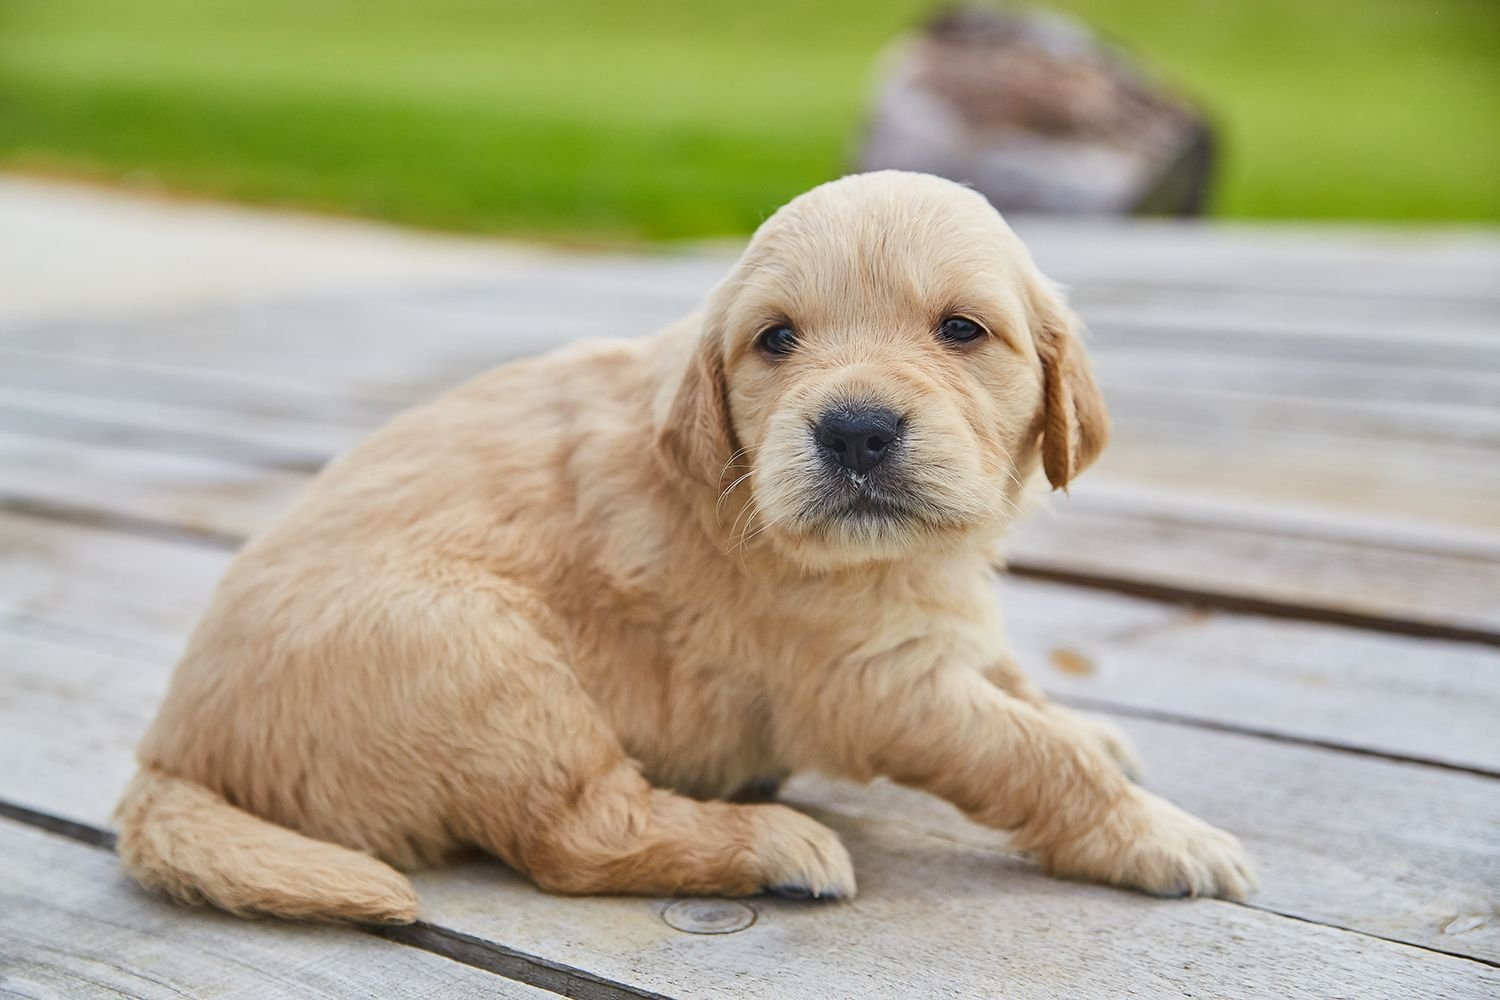 We Are Getting Down To The Final Golden Retriever Pups If You Re Wanting A Family Dog That S Already Used To Small Childr With Images Puppies Golden Retriever Family Dogs